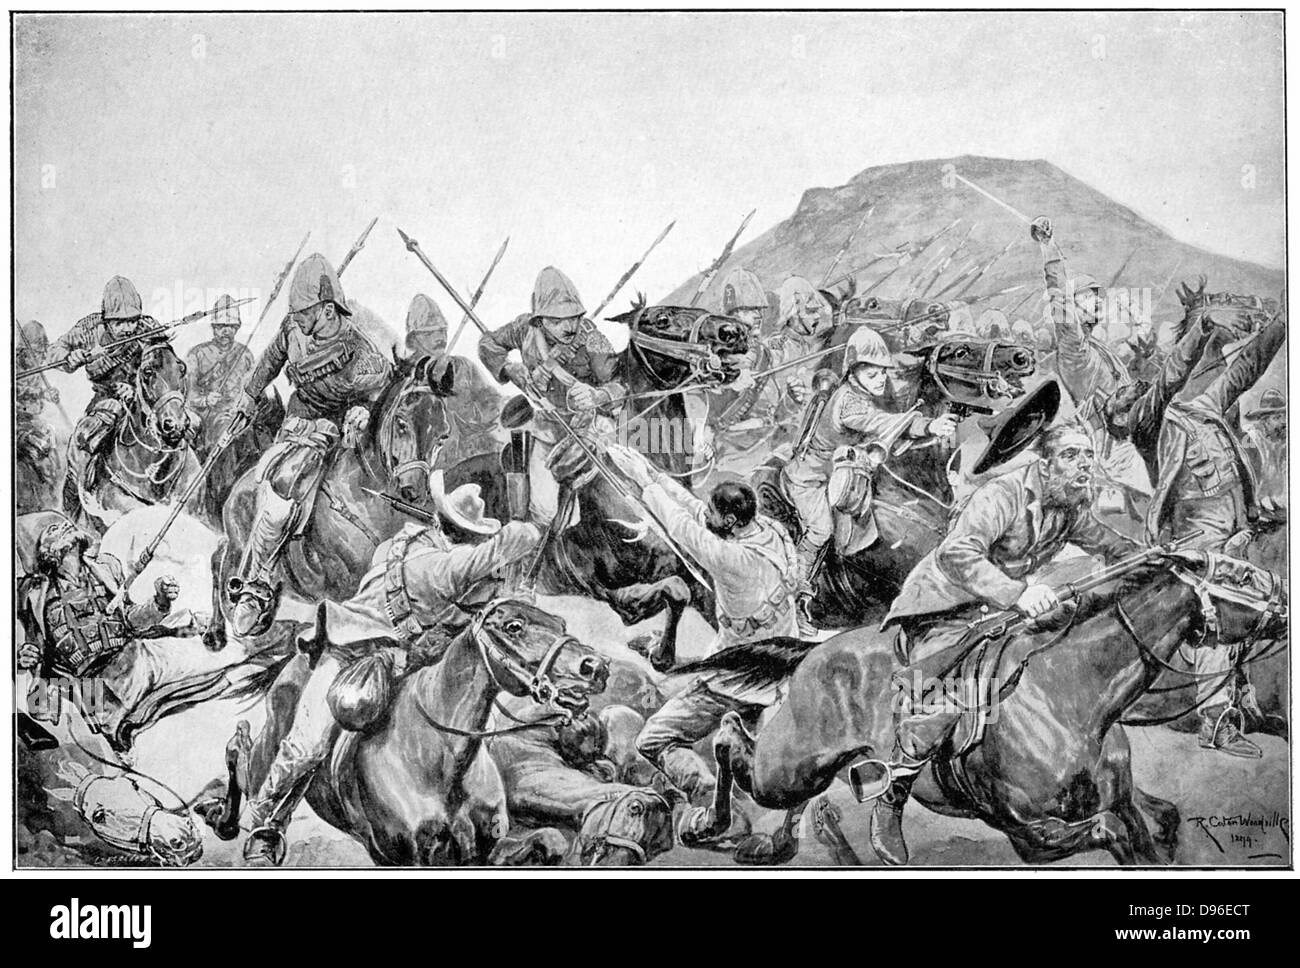 Charge of the 5th Lancers at the Battle of Elandslaagte. After drawing by R. Caton Woodville. Boer War. - Stock Image